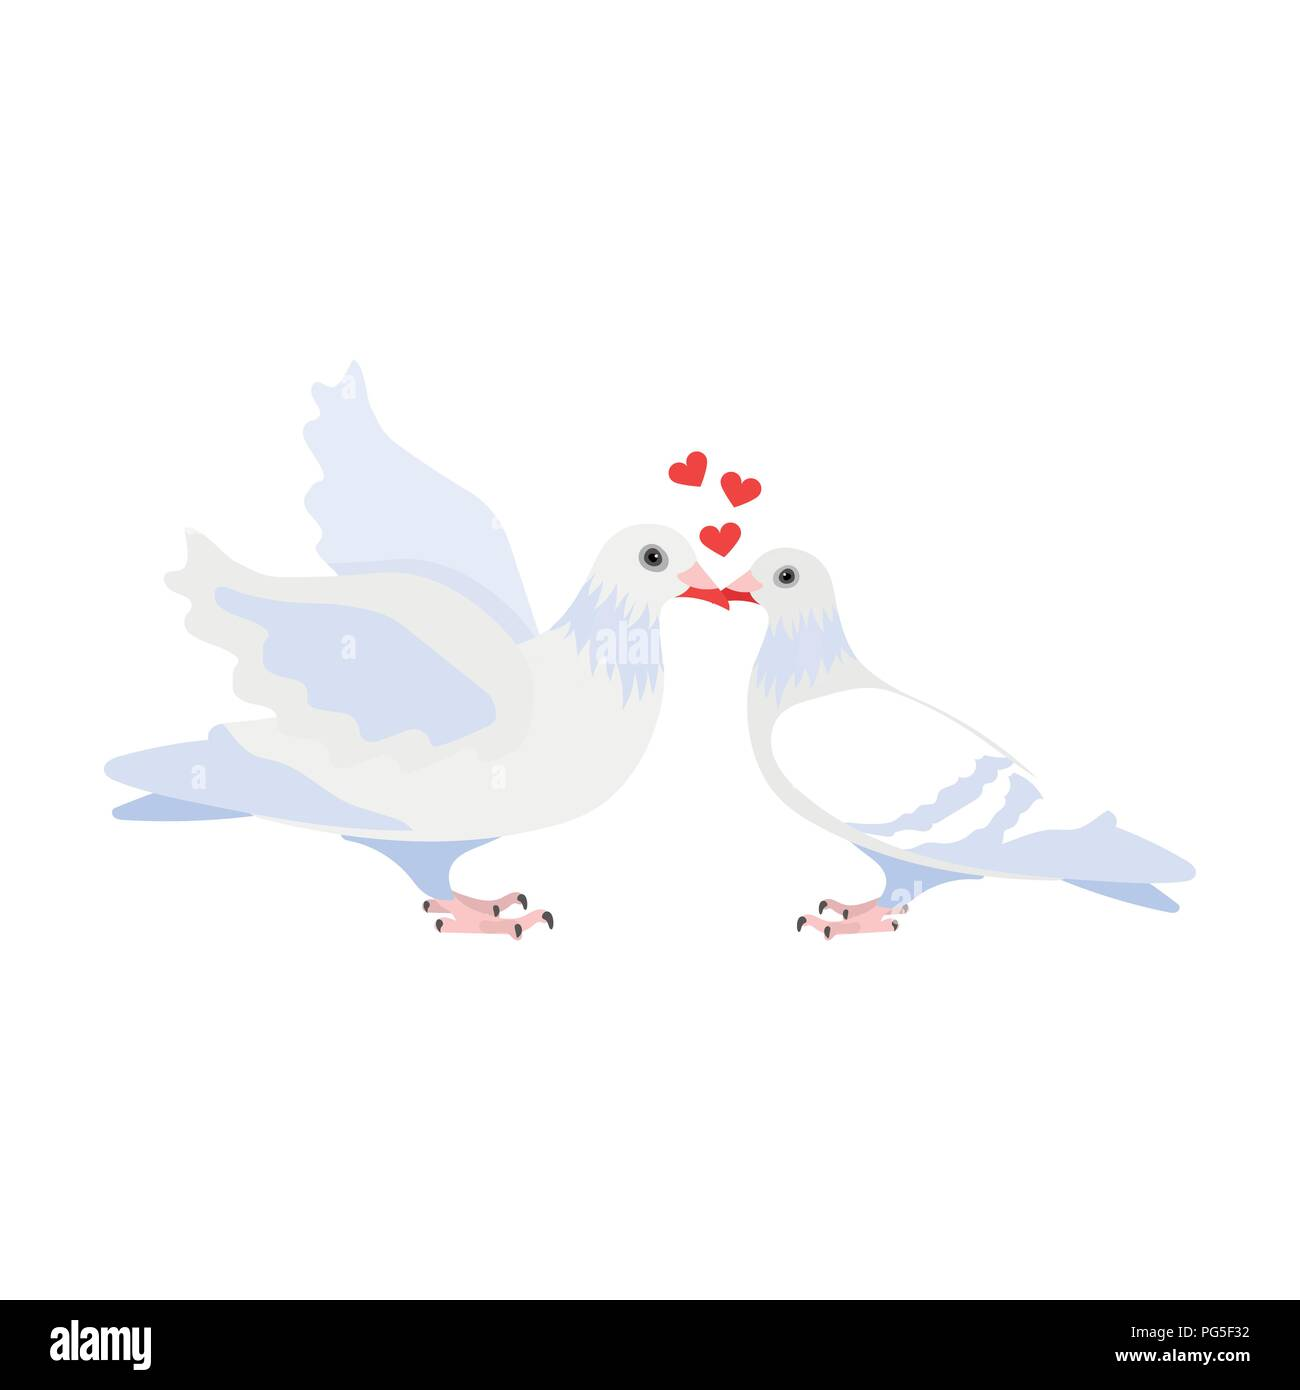 Two Funny Cartoon Pigeons Illustration White Doves With A Heart A